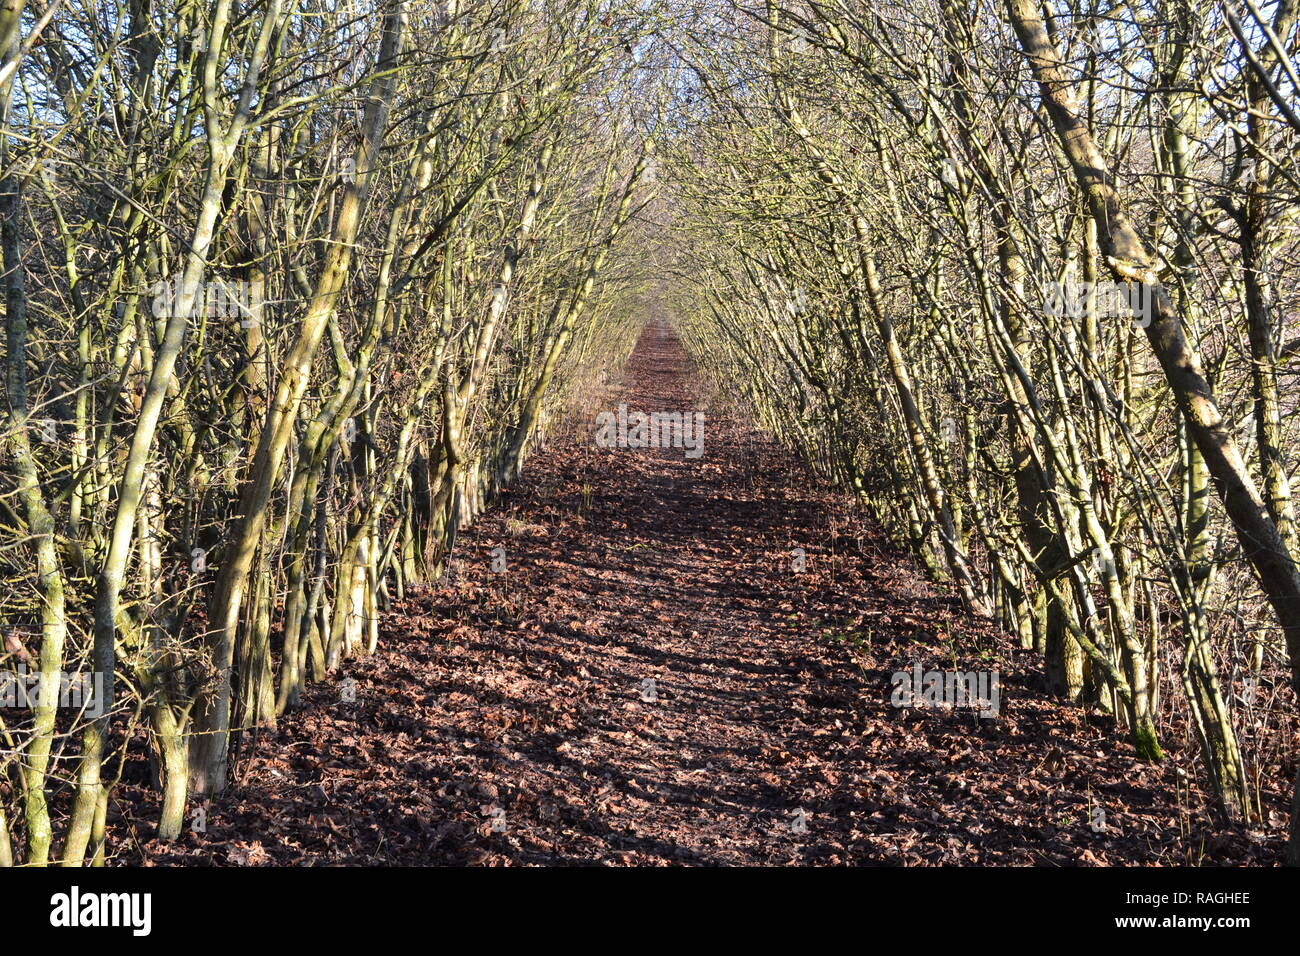 An enticing tree-covered footpath at Austin Lodge leading to Romney Street and Otford, in winter. Countryside in north west Kent, England - Stock Image